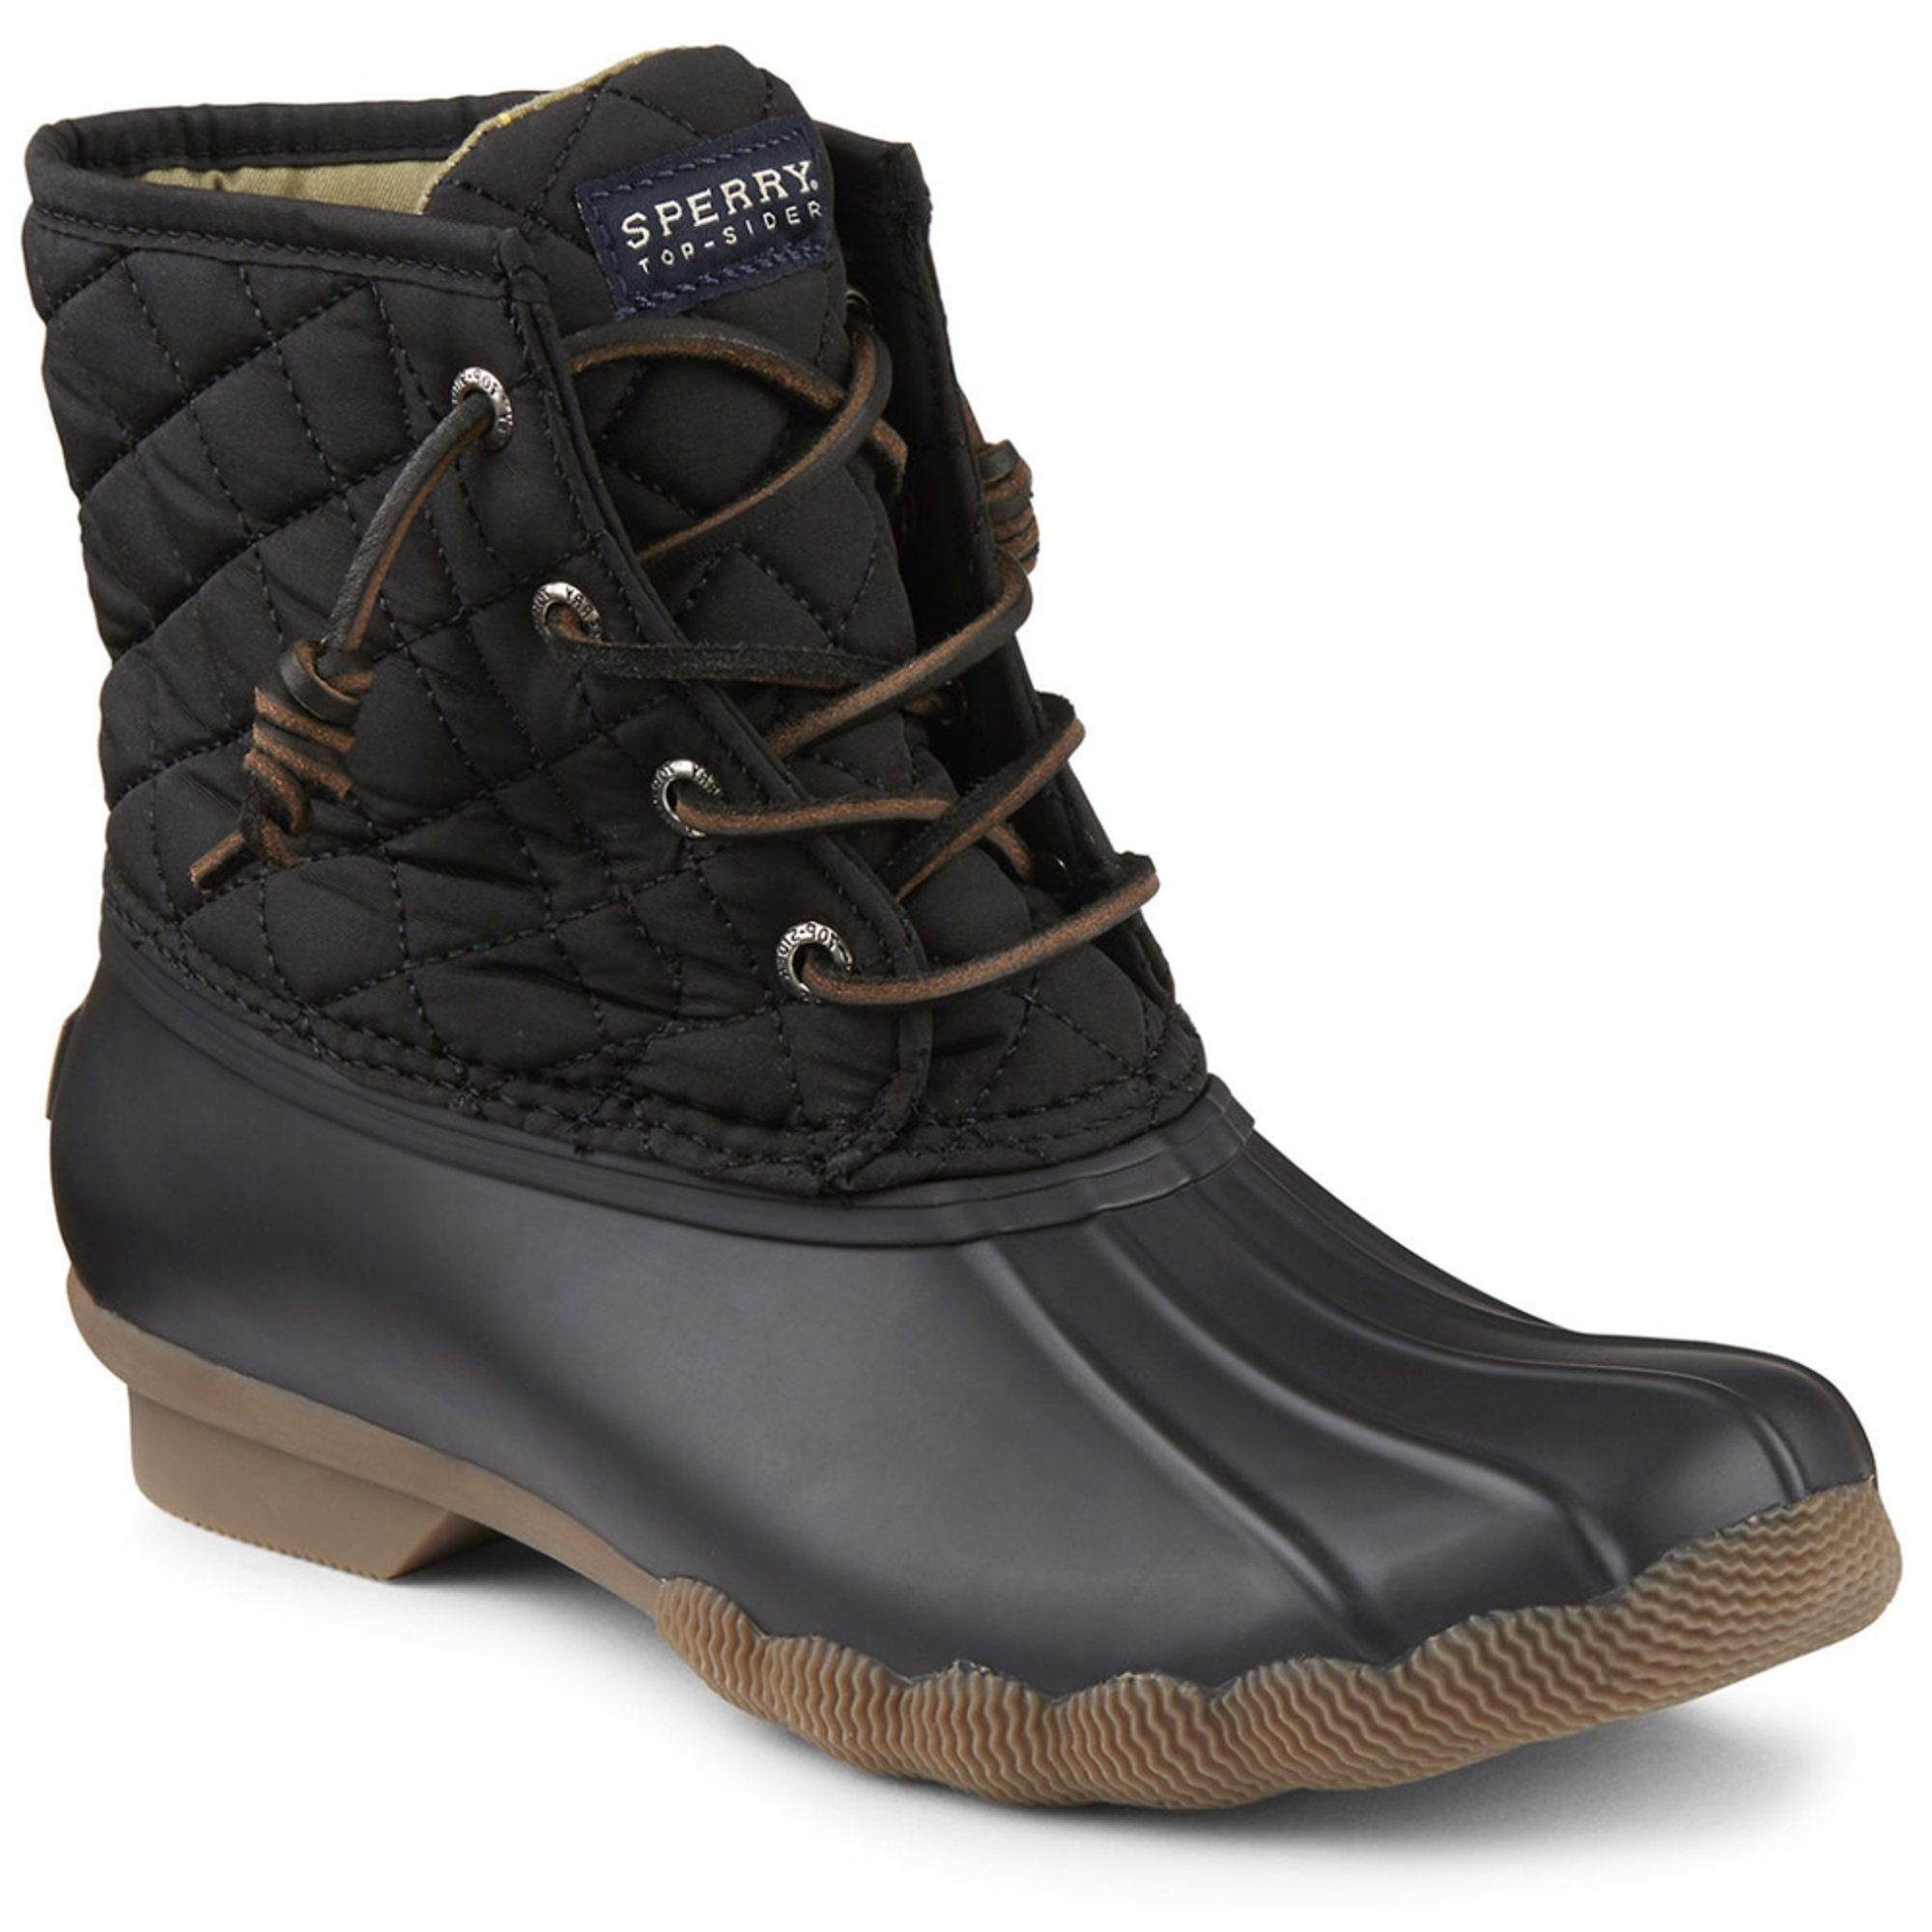 Brilliant Deeshop Sperry TopSider Womens Saltwater Duck Boot  TanNavy  7MPerfect For Any Weather Condition, The Sperry TopSider Womens Saltwater Duck Boots Are Waterproof And Include A Warm Lining That Will Keep You